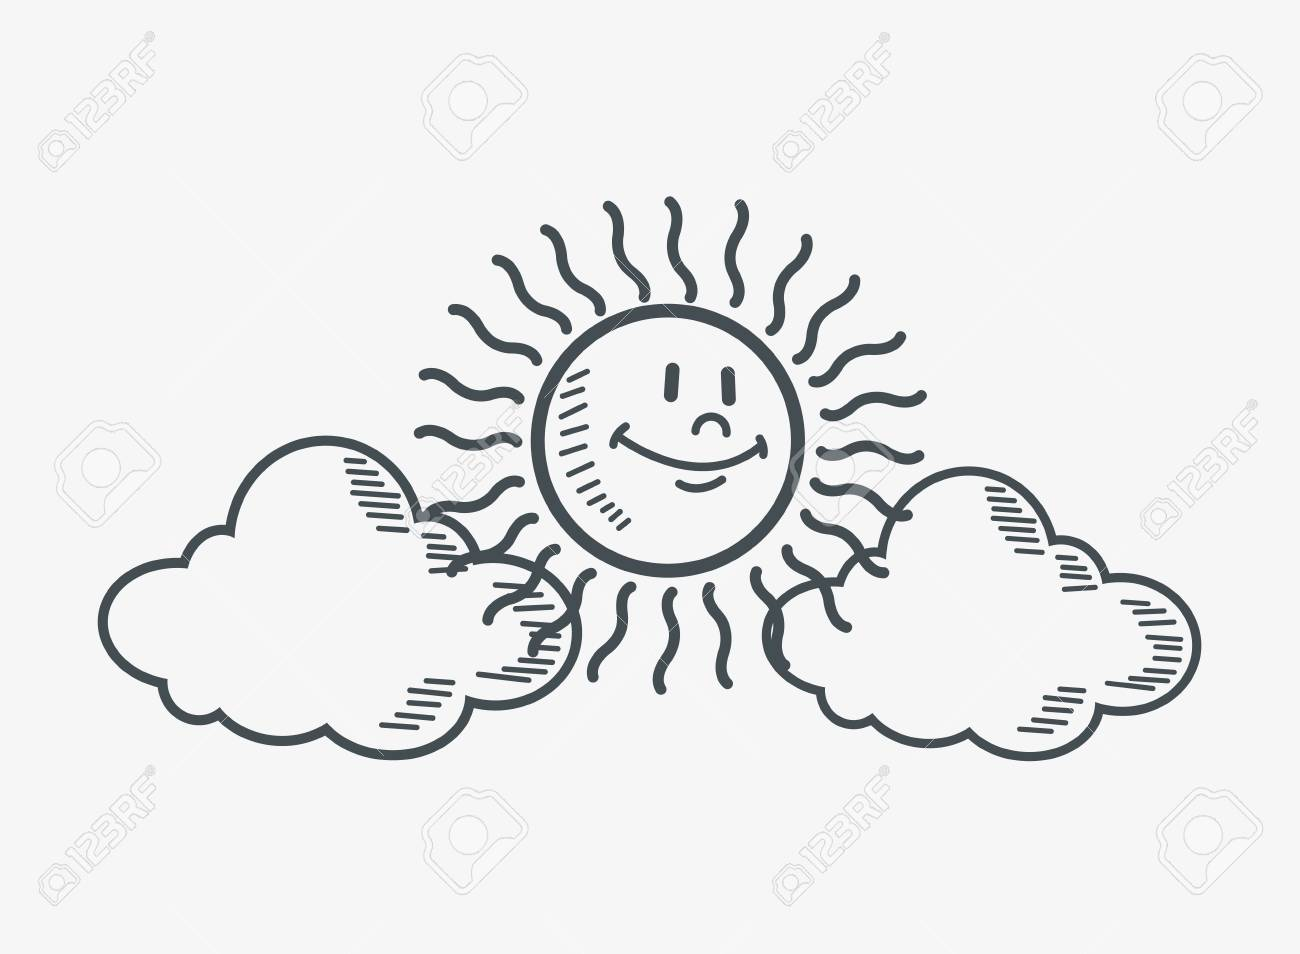 1300x954 Flat Design Sun And Clouds Doodle Drawing Image Vector